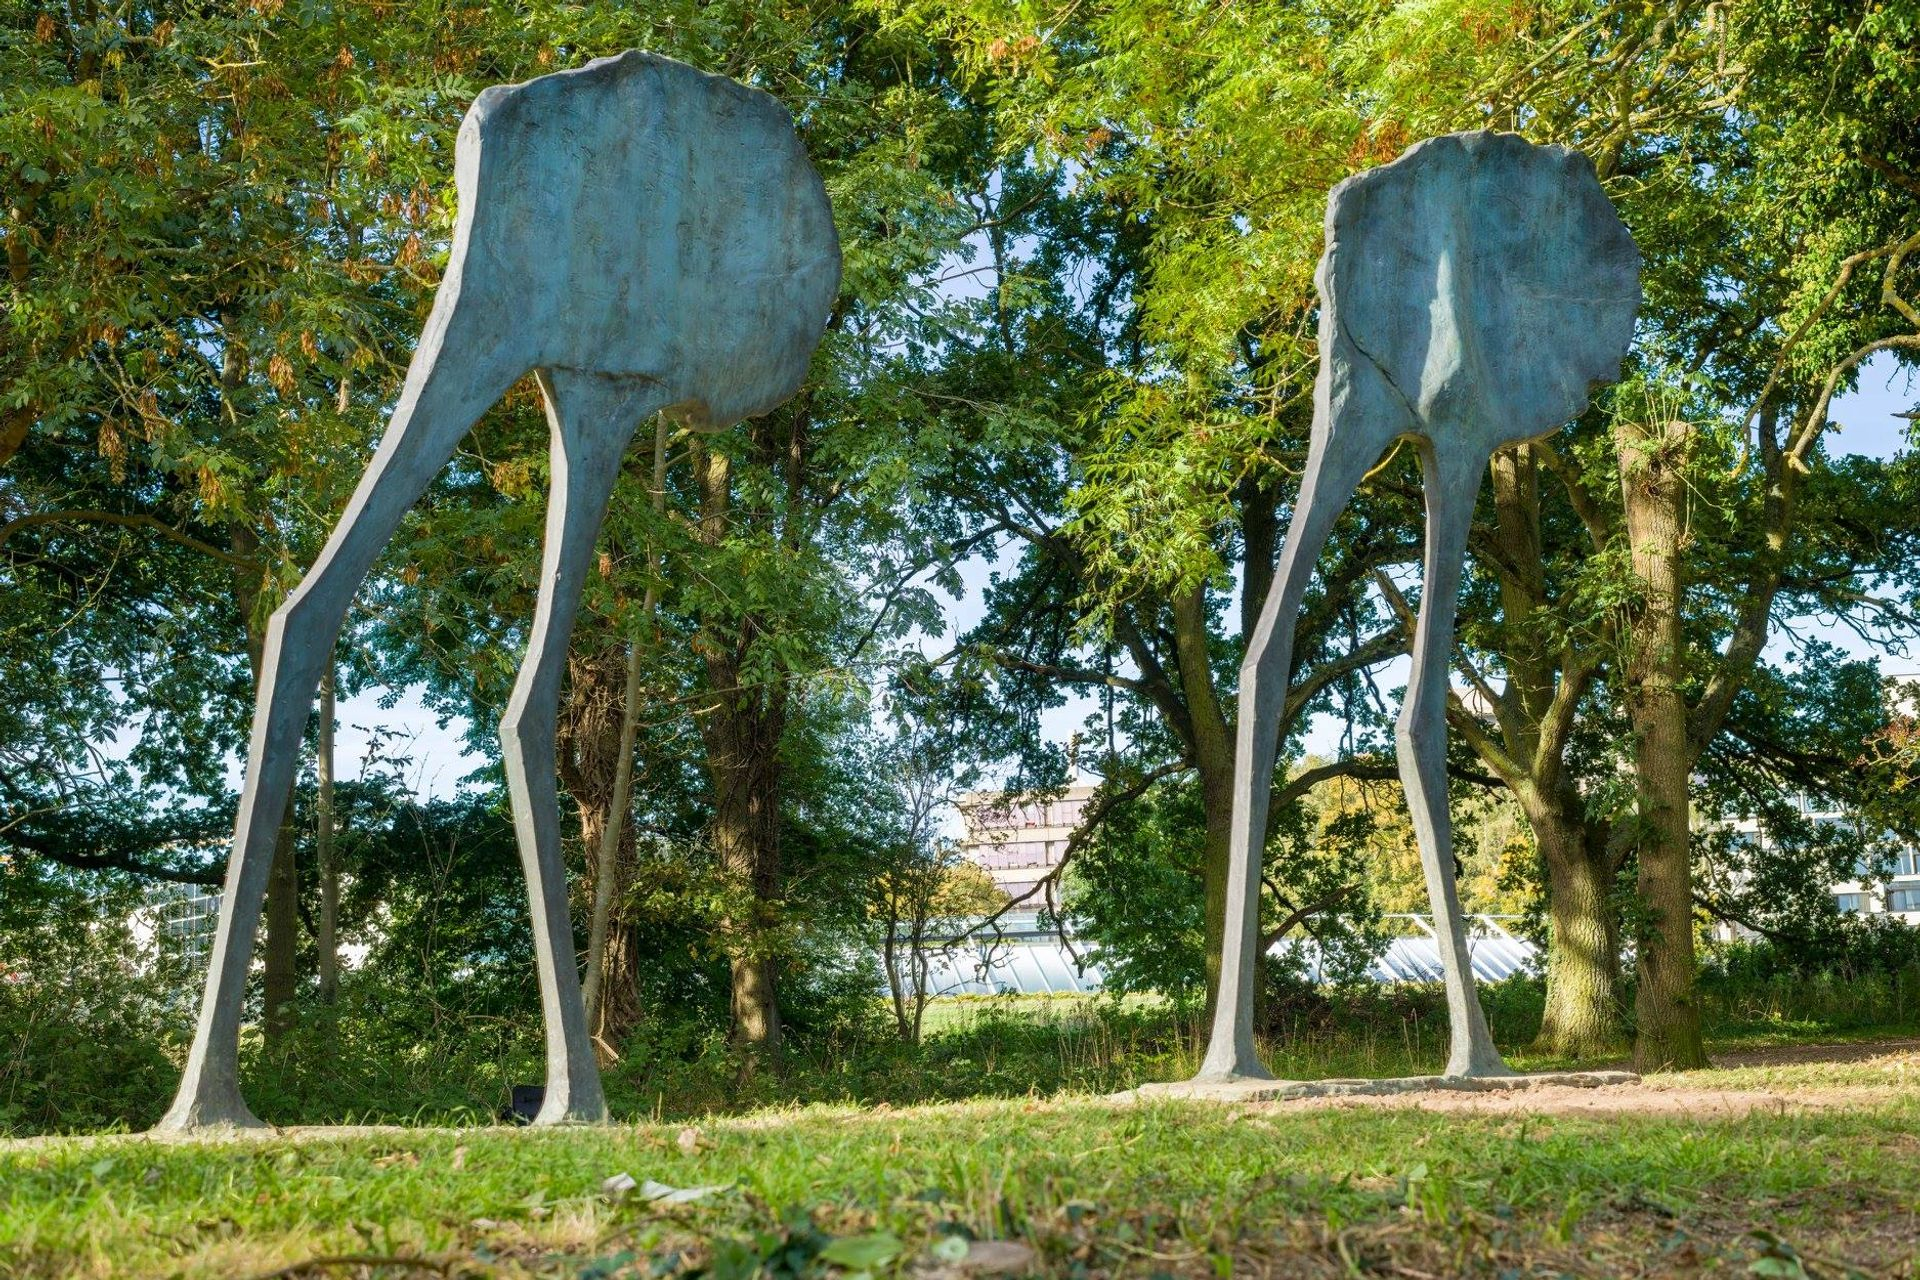 A pair of bronze sculptures, Mirage I and Mirage II, are on view in the Sainsbury Centre's sculpture park despite the UK lockdown Photo: Andy Crouch